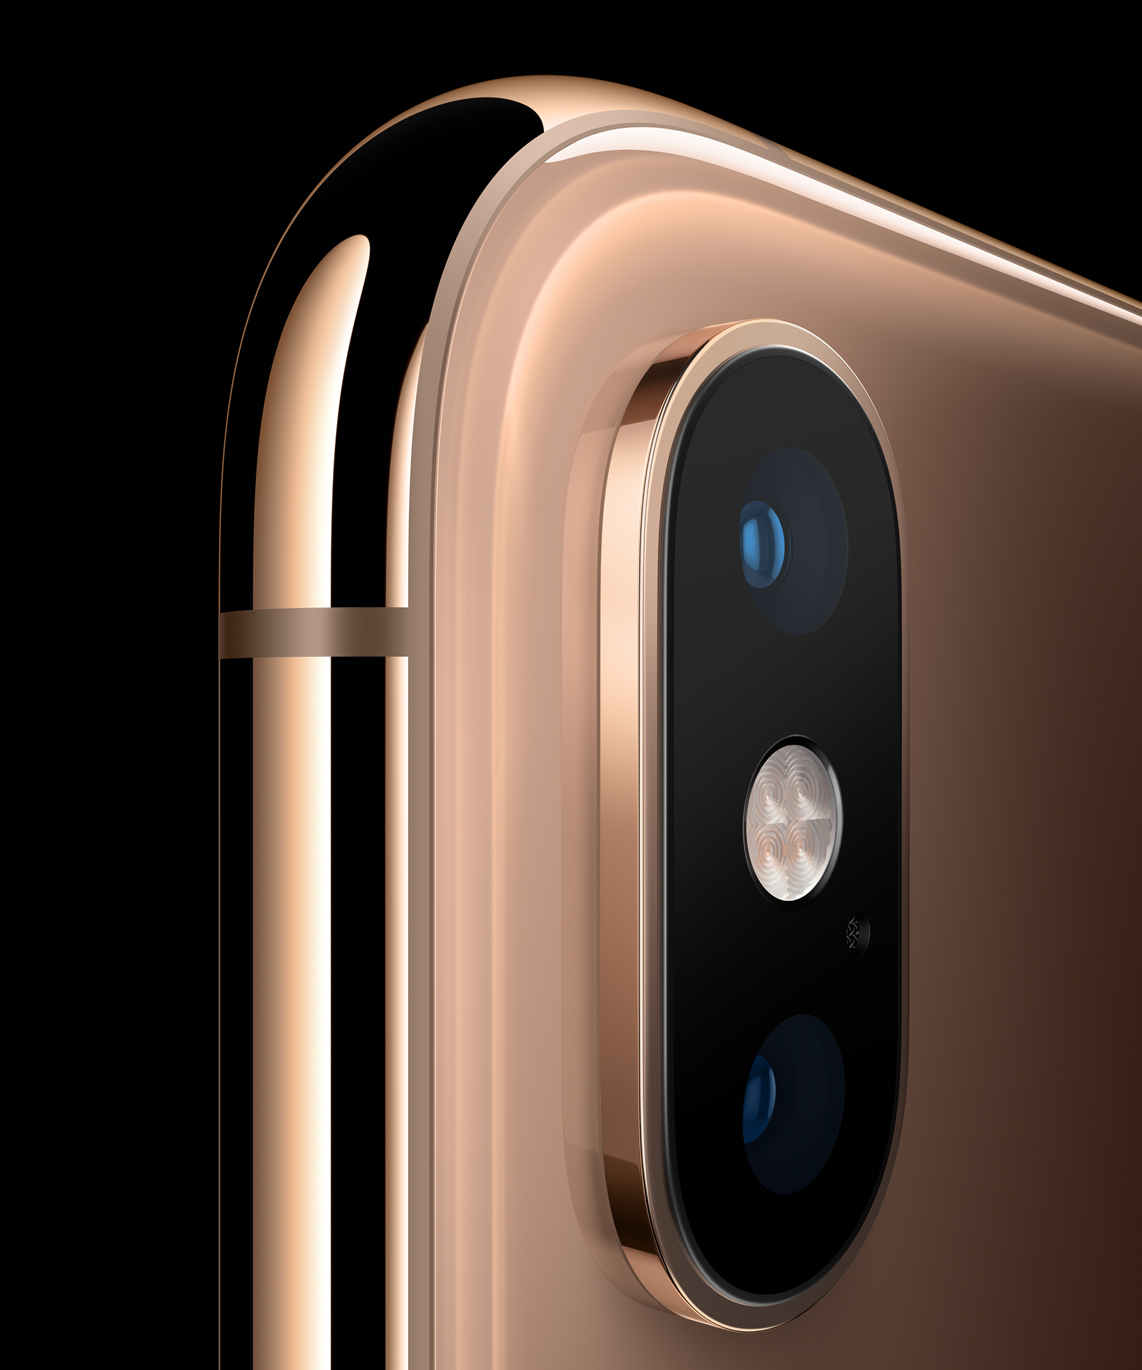 The iPhone XS and XS MAX boast an impressive camera array. Image from the Apple Newsroom.